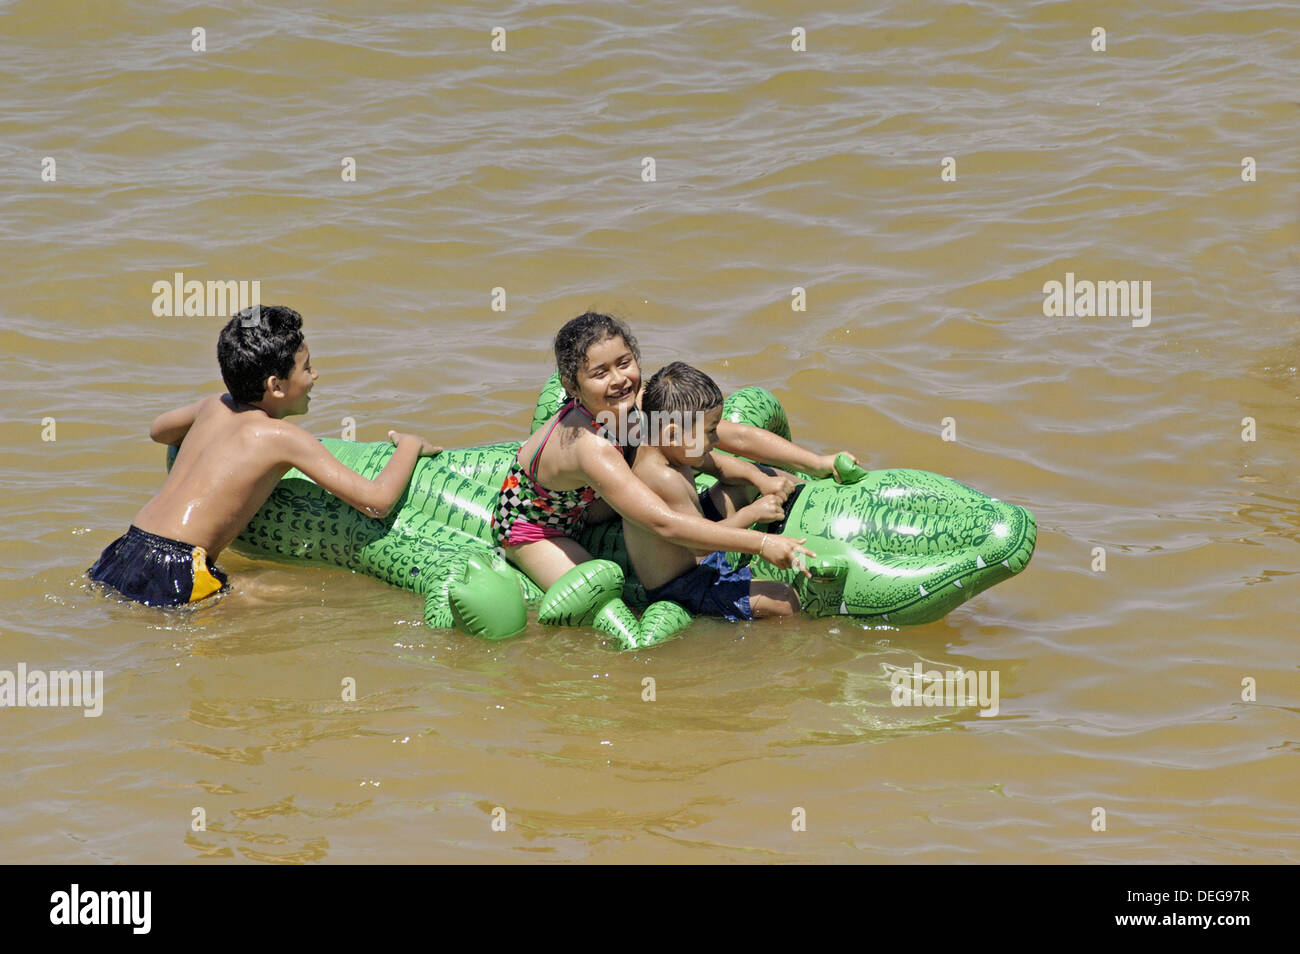 Family time at the Carters Lake beaches in mountains of GA during summer - Stock Image